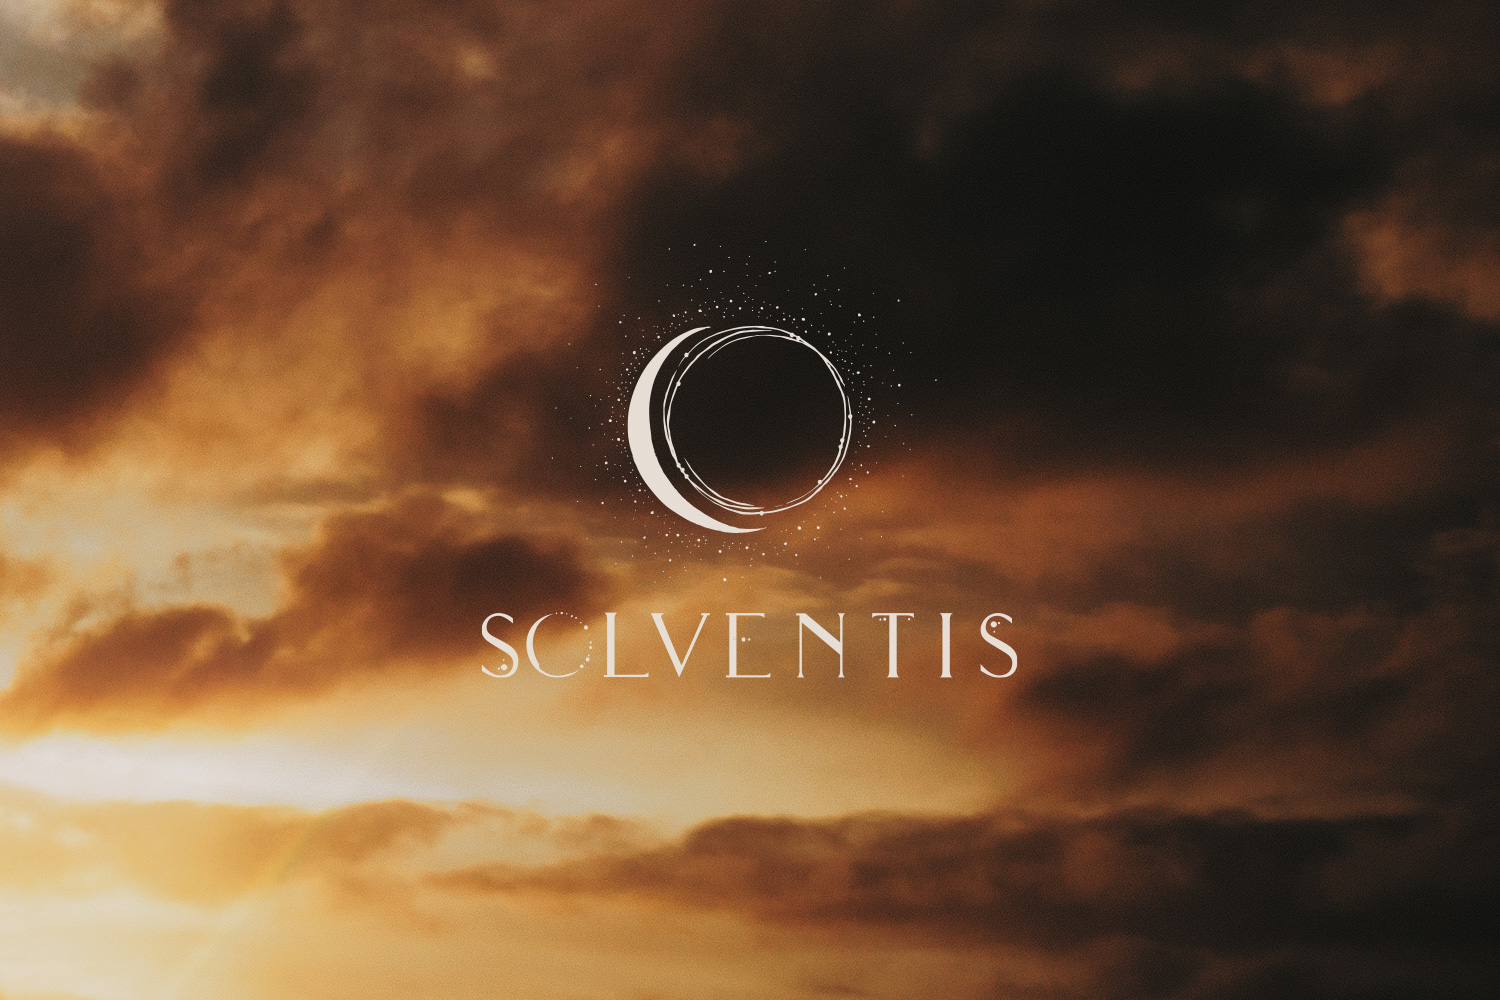 Solventis, French folk music band rebranding